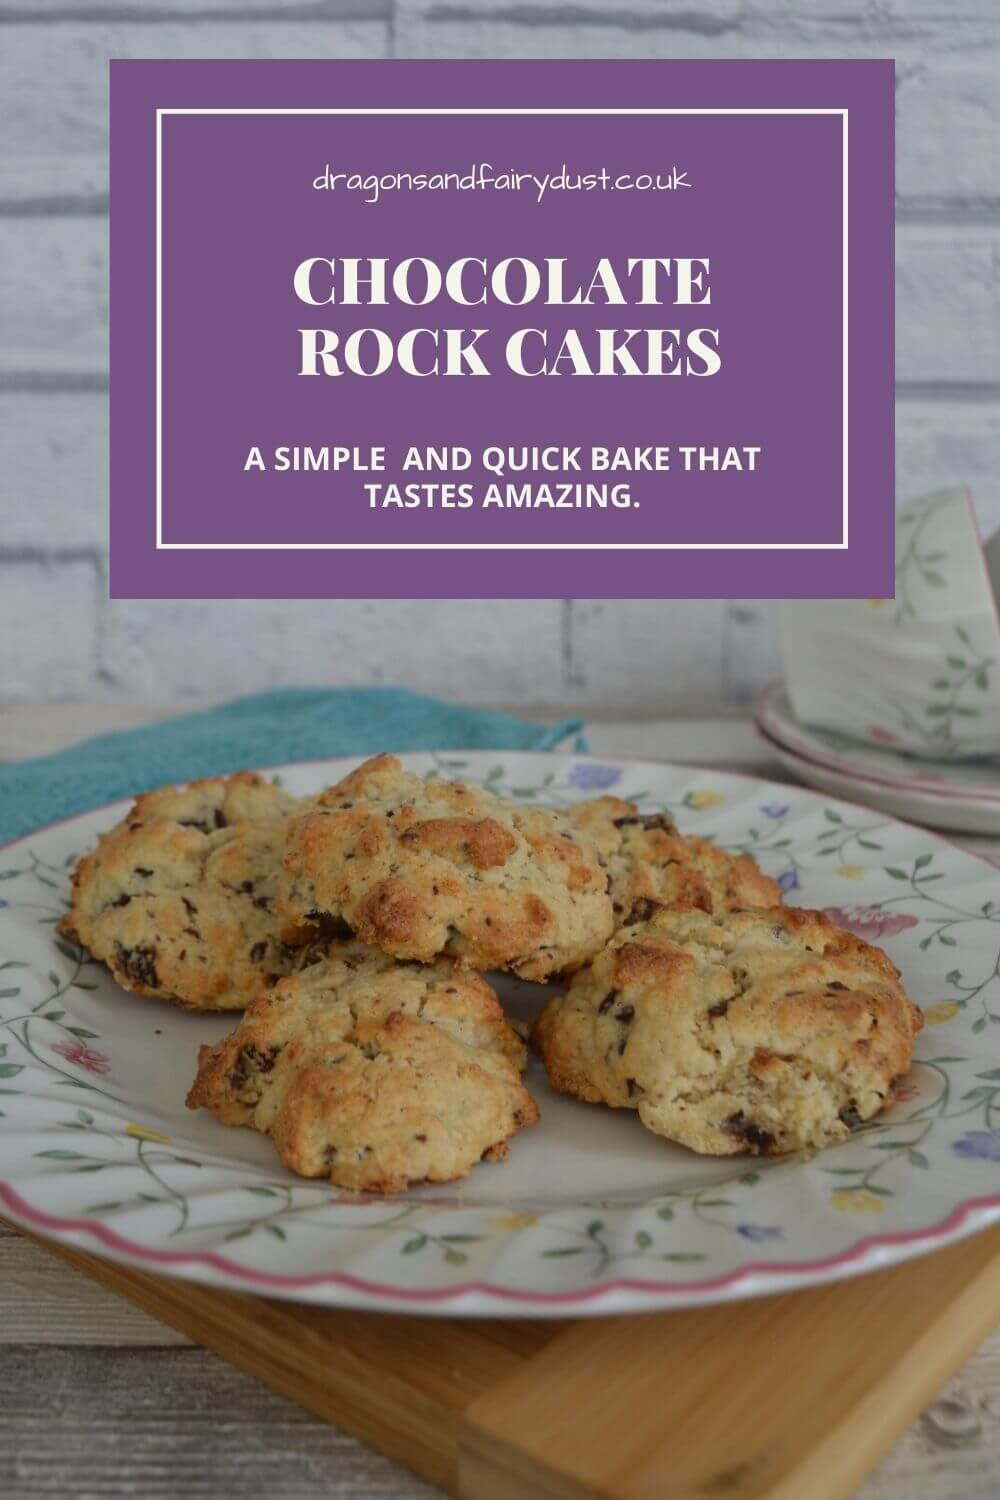 Chocolate rock cakes are a simple and delicious bake. Once you try one you will come back for more.